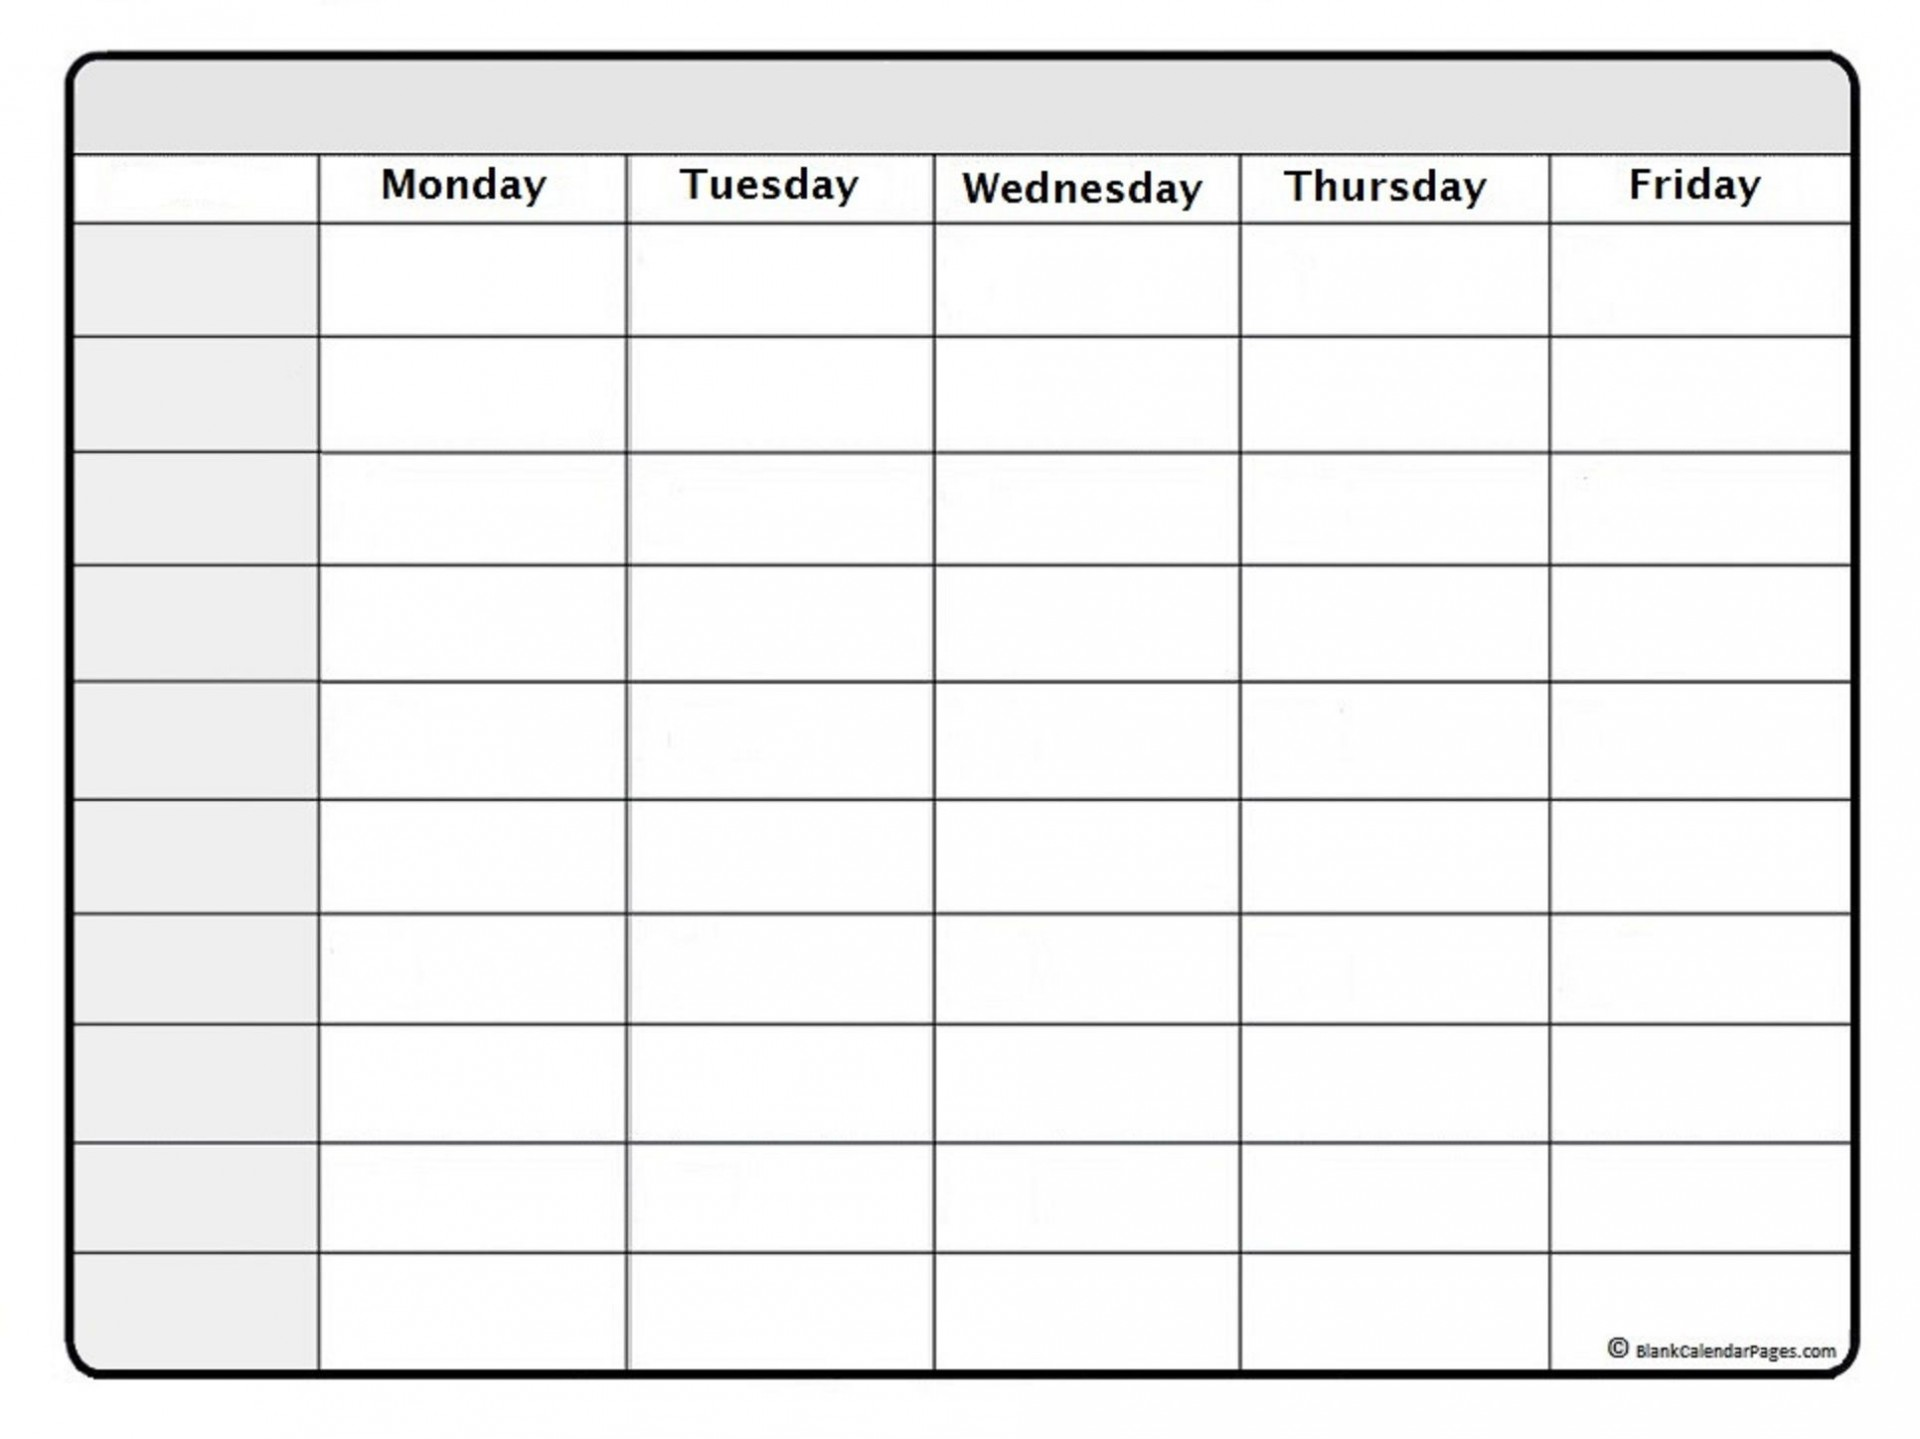 003 Shocking Blank Weekly Calendar Template Picture  Word Microsoft 20191920